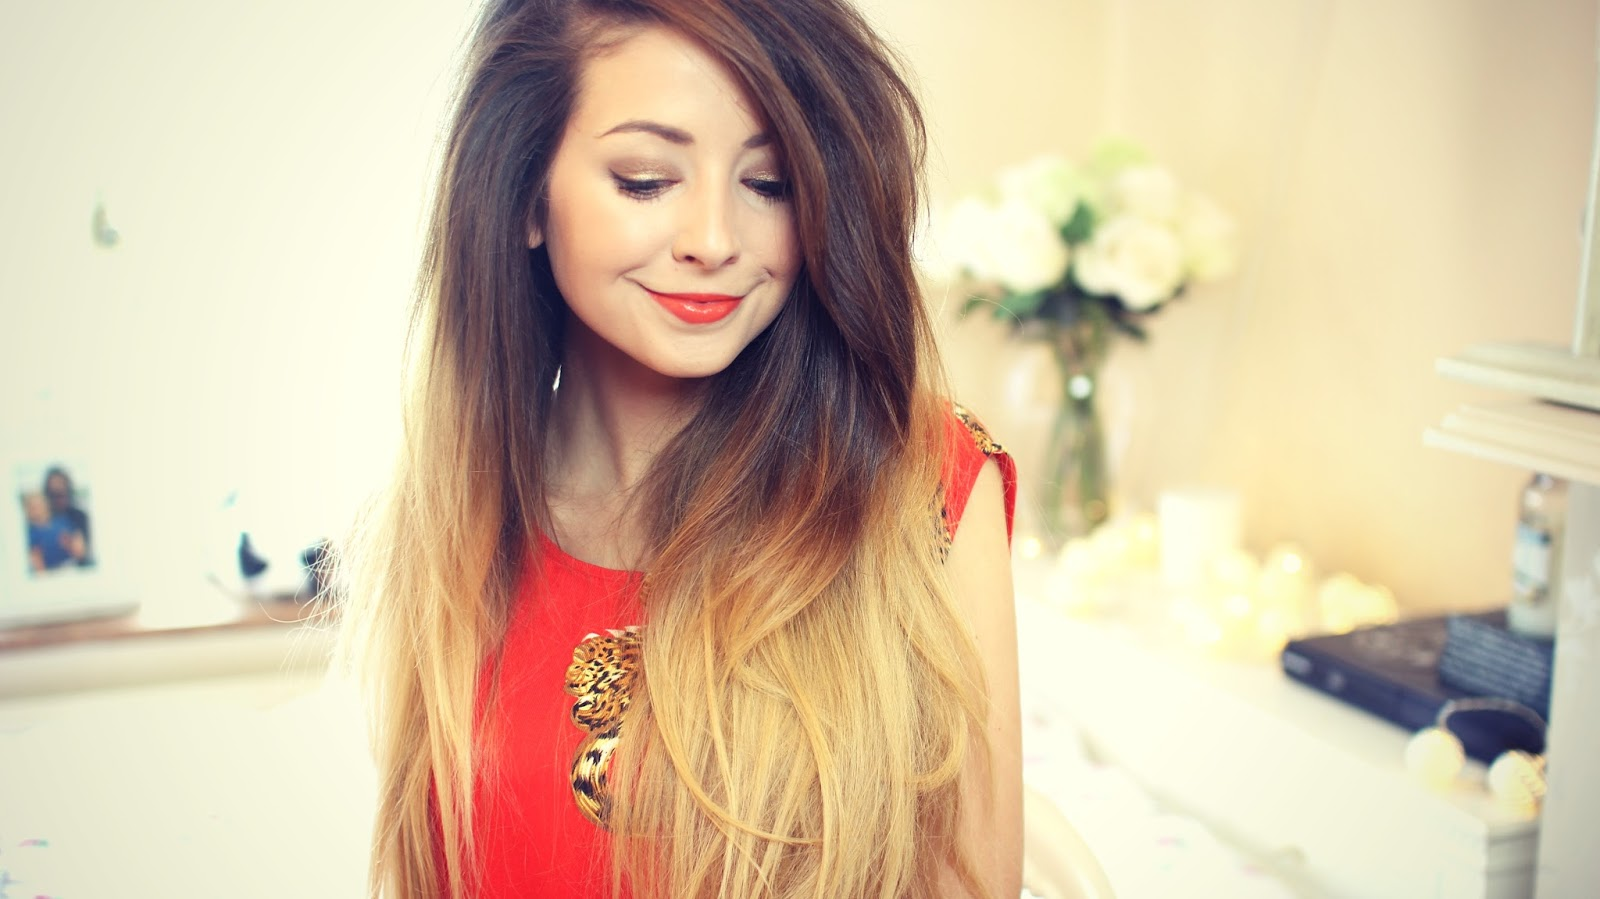 ... Long hairstyles on Pinterest Zoella hair, Zoella and Long haircuts